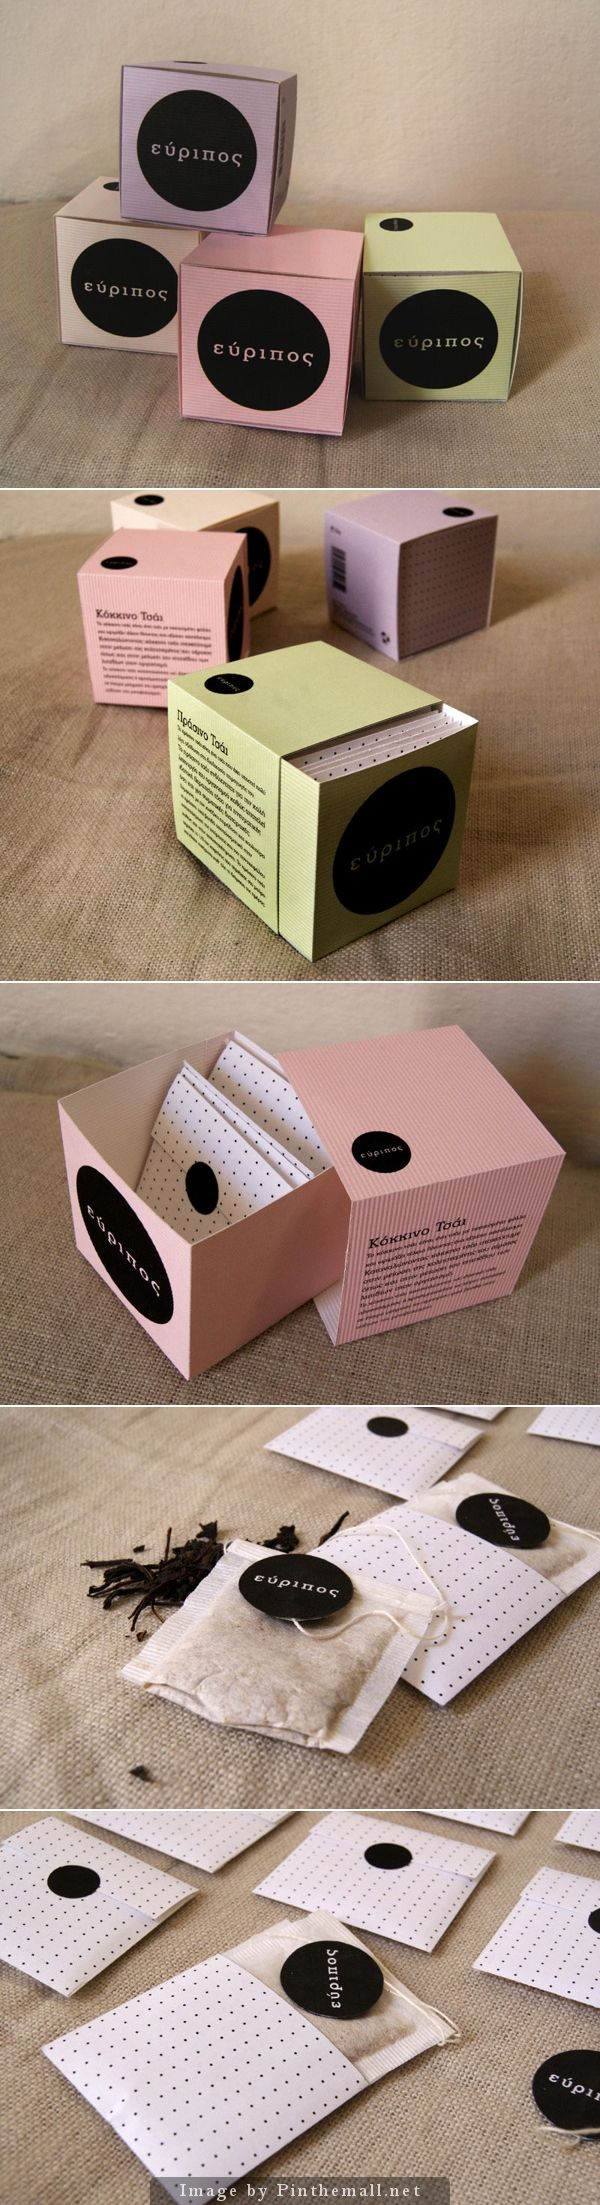 Evripos-Tea-Packaging PD